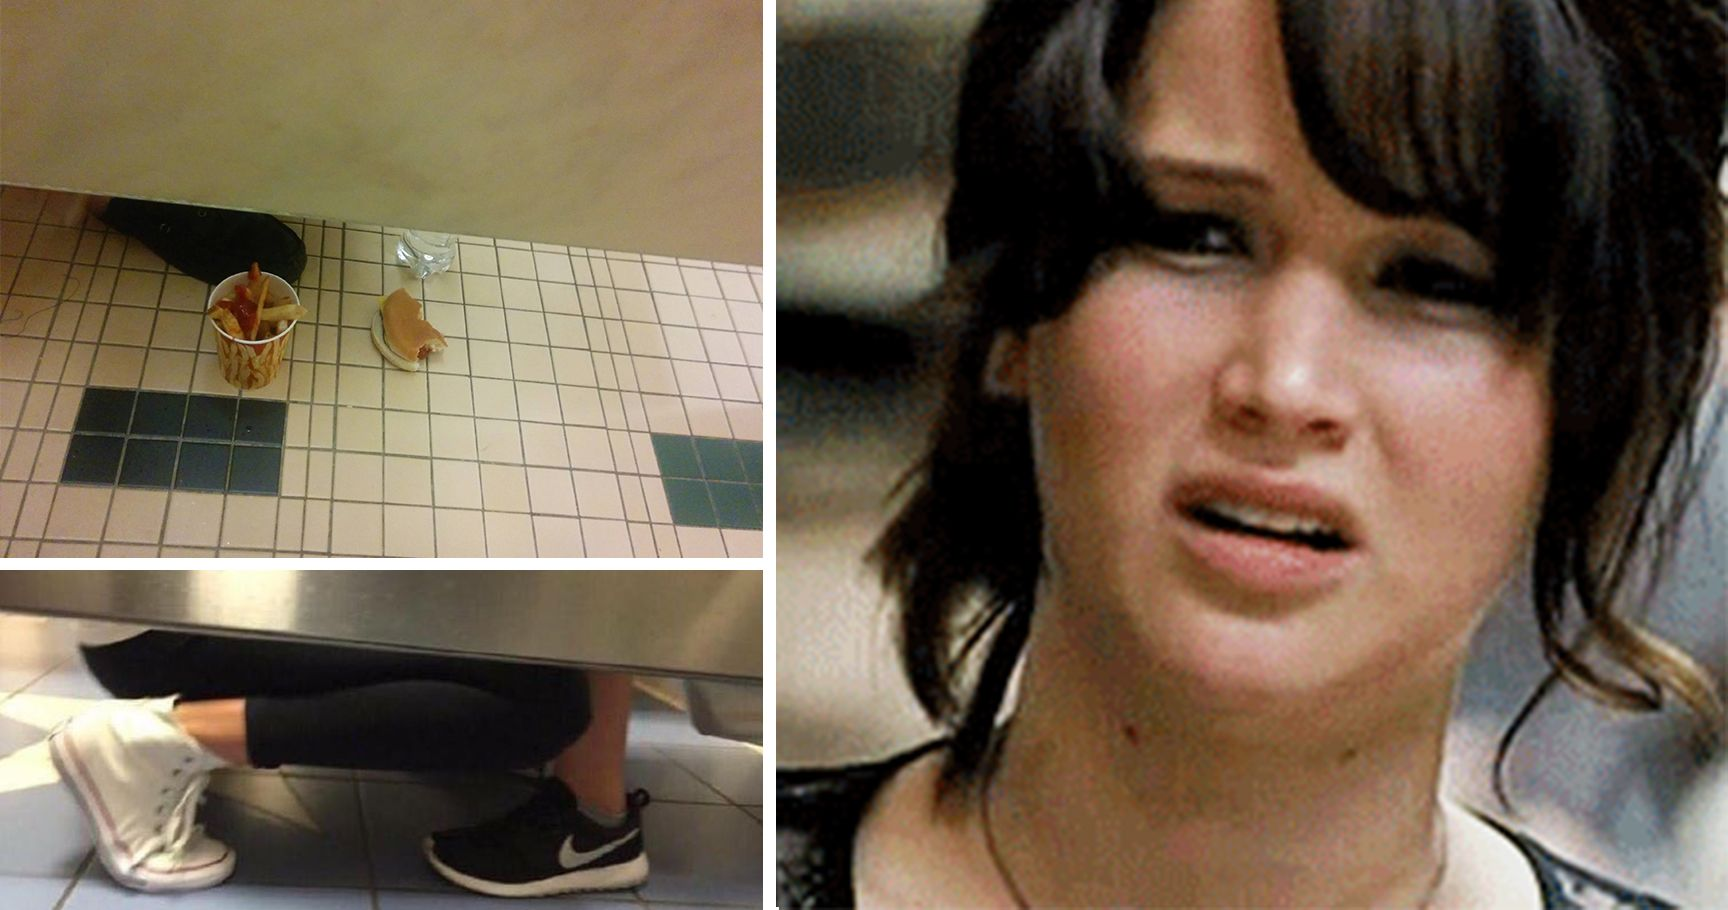 15 Inexplicable Horrors People Have Witnessed In Public Restrooms